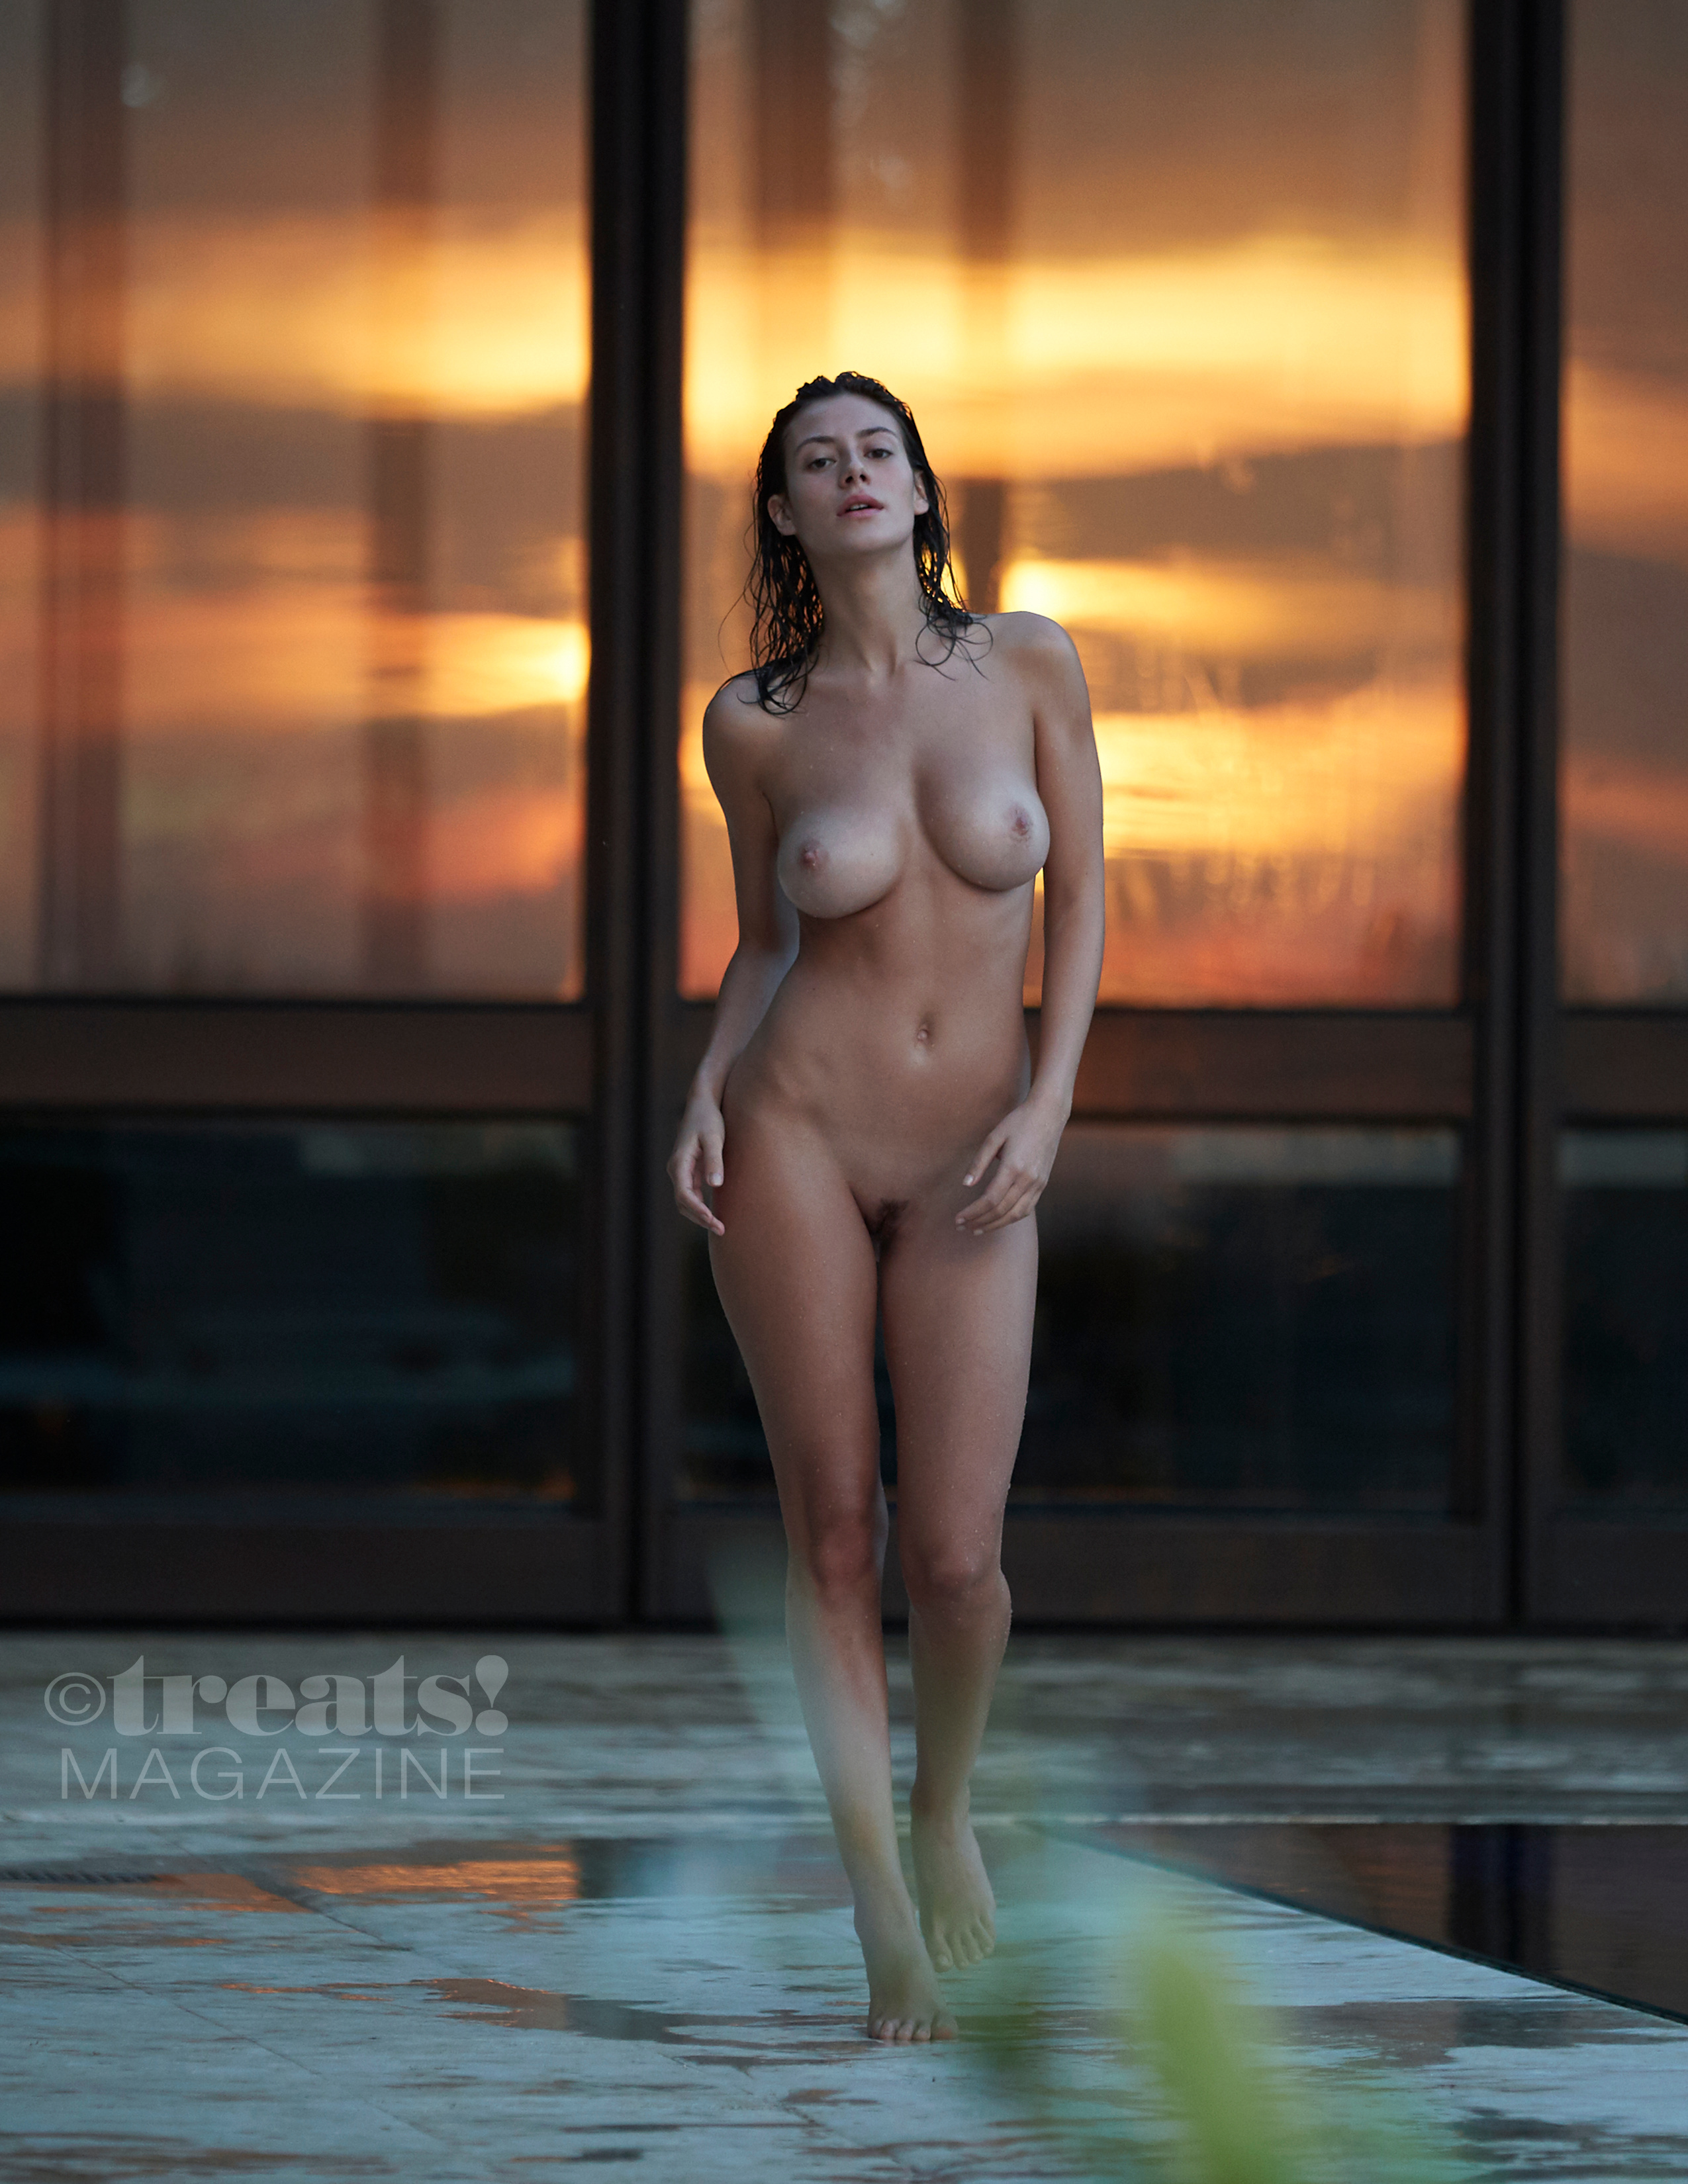 alejandra-guilmant-perfect-nude-body-erotic-treats-magazine-by-david-bellemere-38